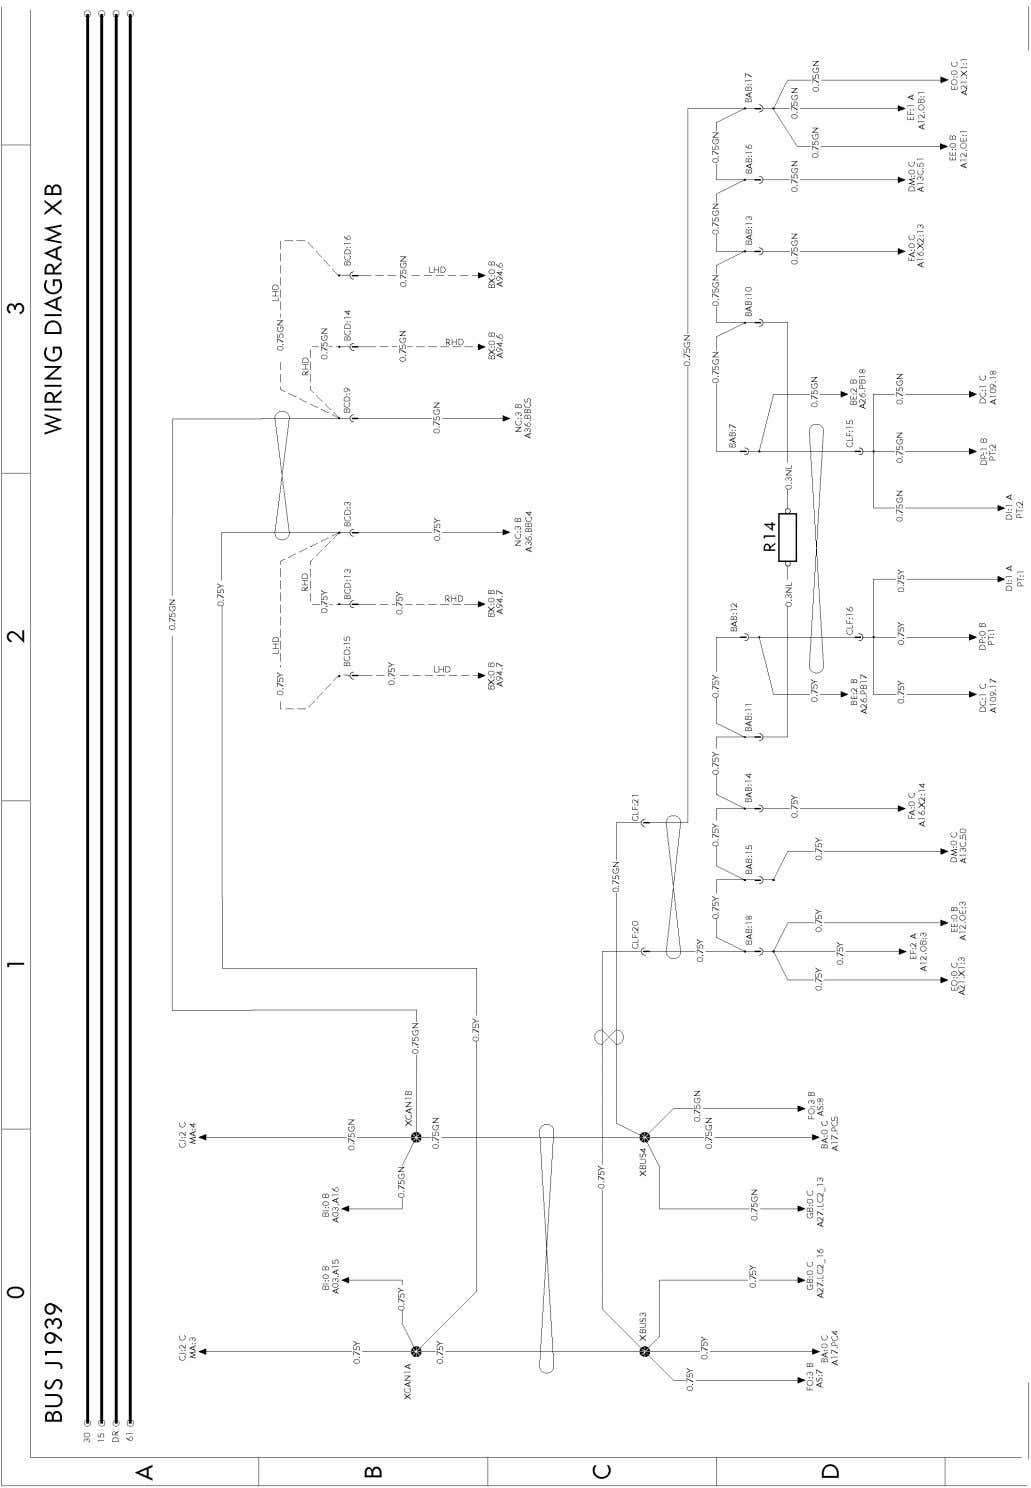 T3028729 Wiring diagram Page 119 (298)